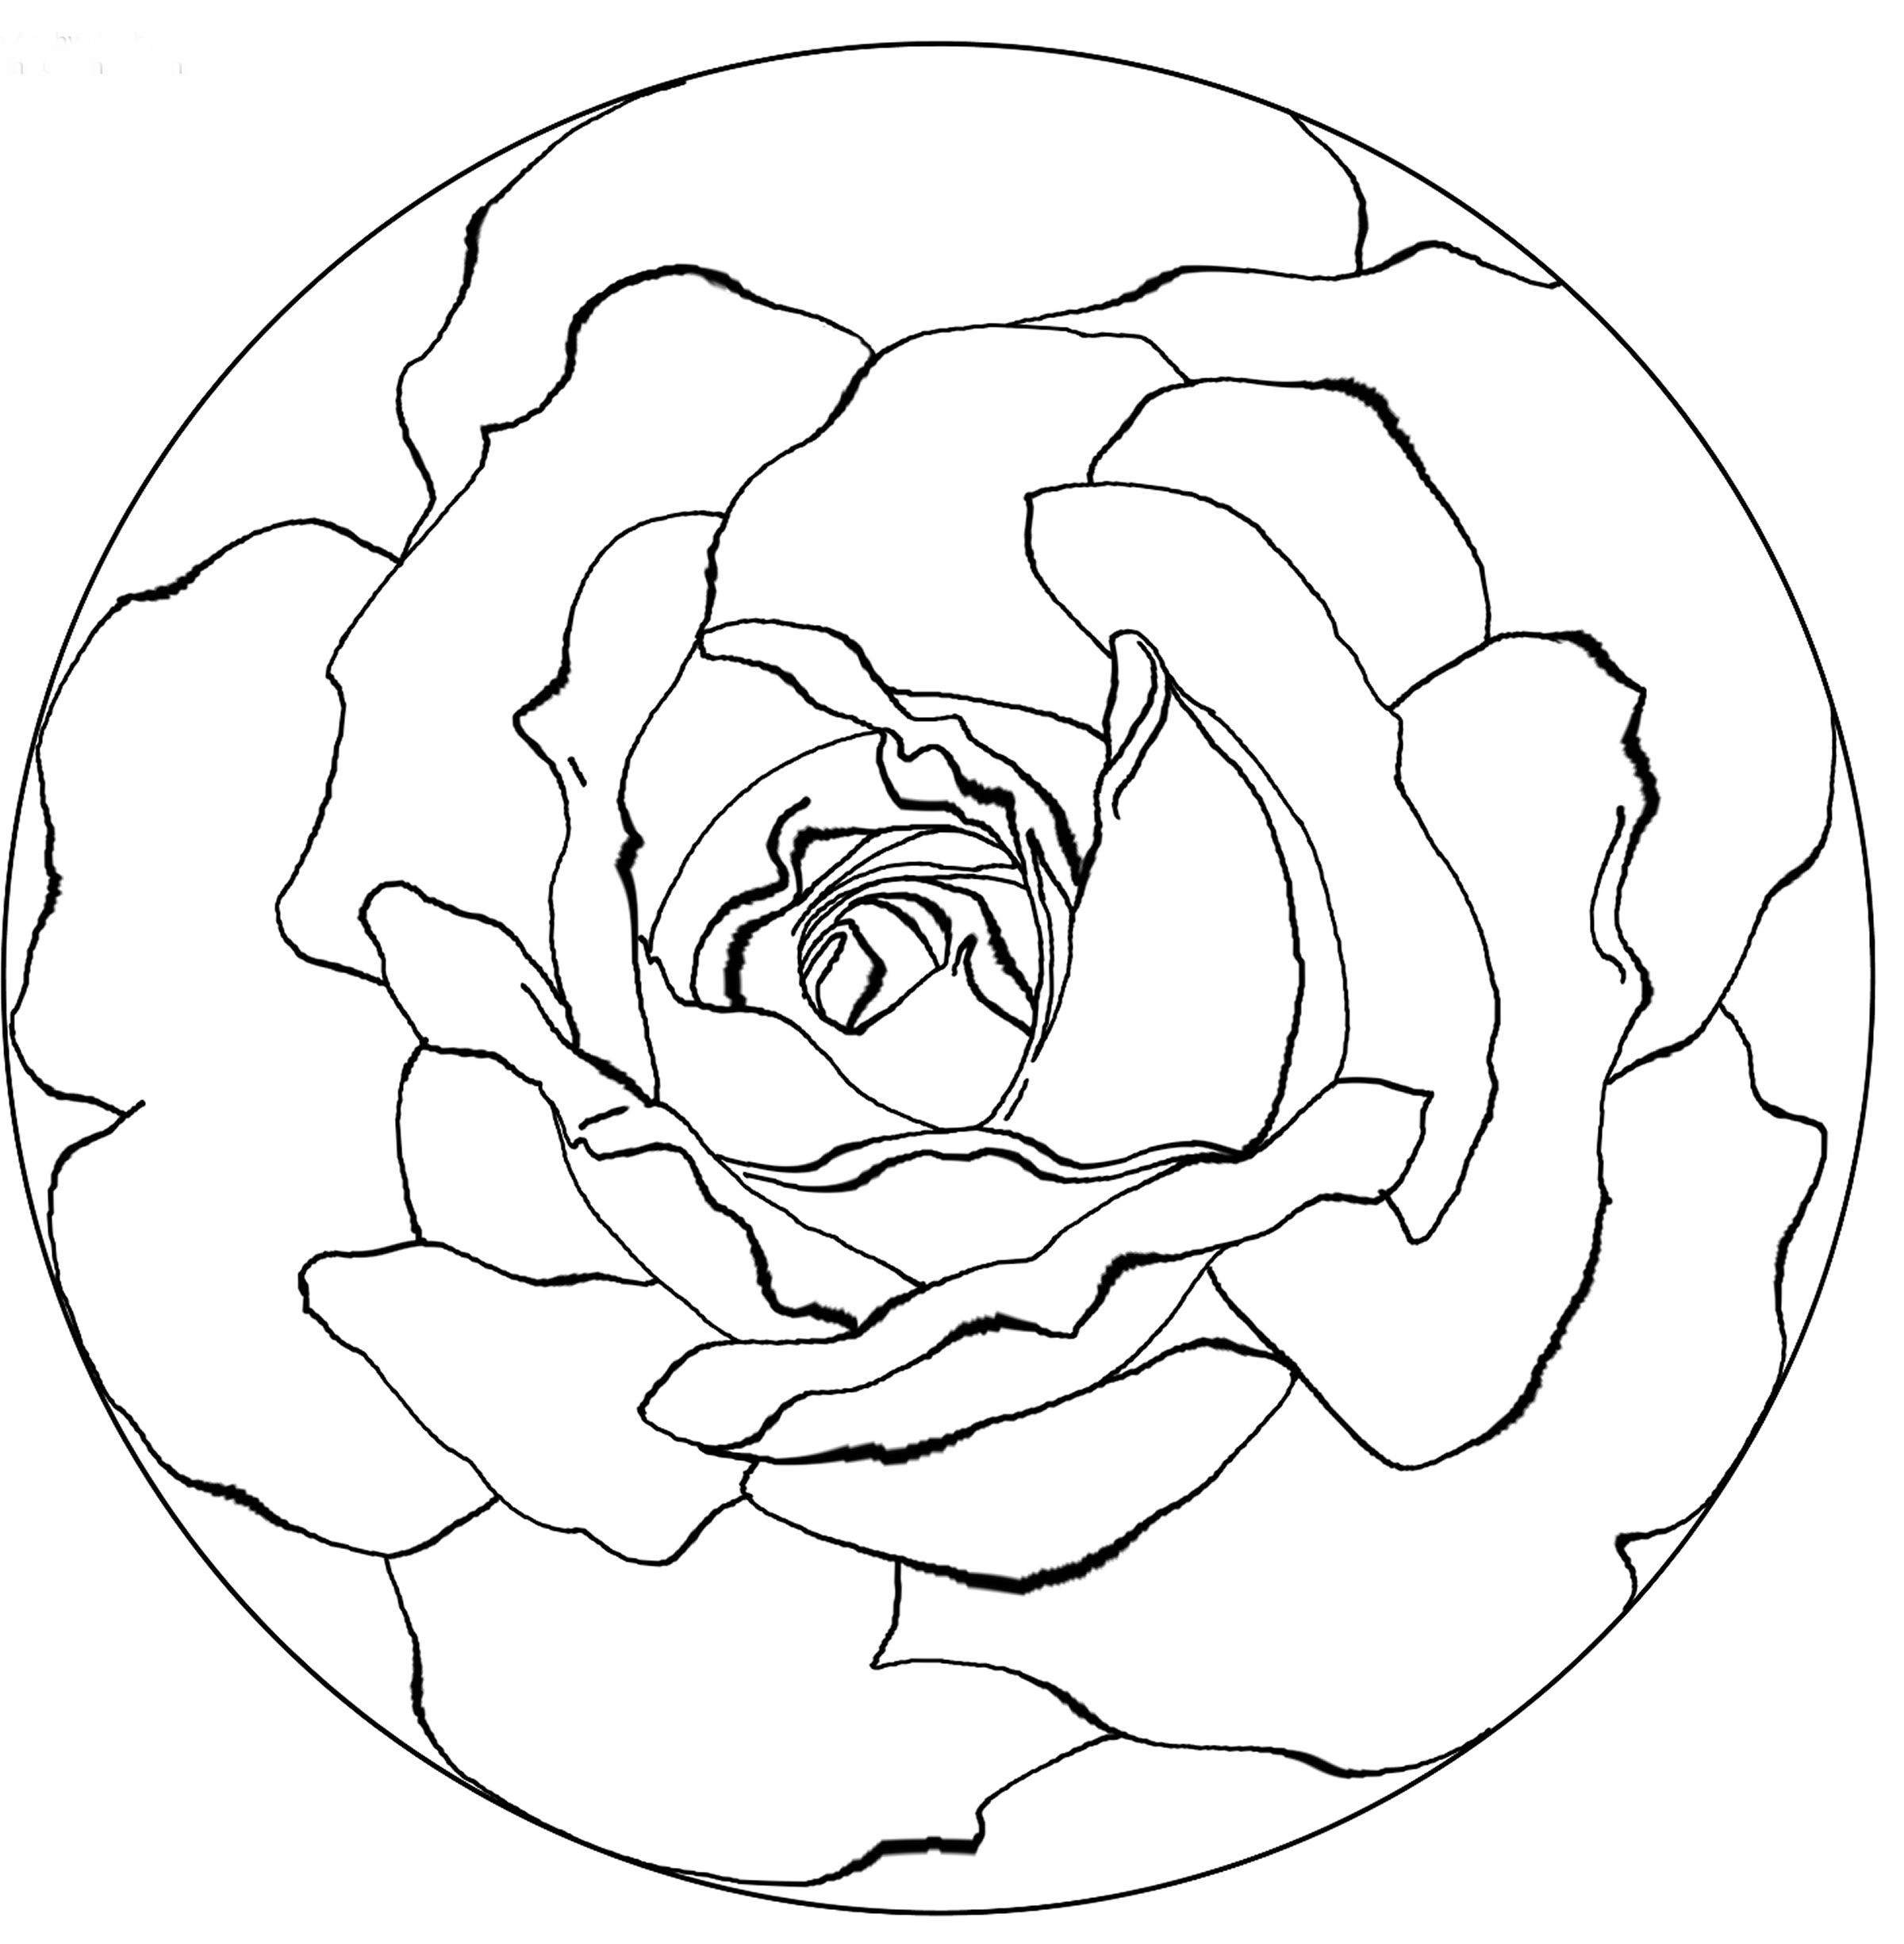 mandala coloring pages online - mandala coloring pages 11